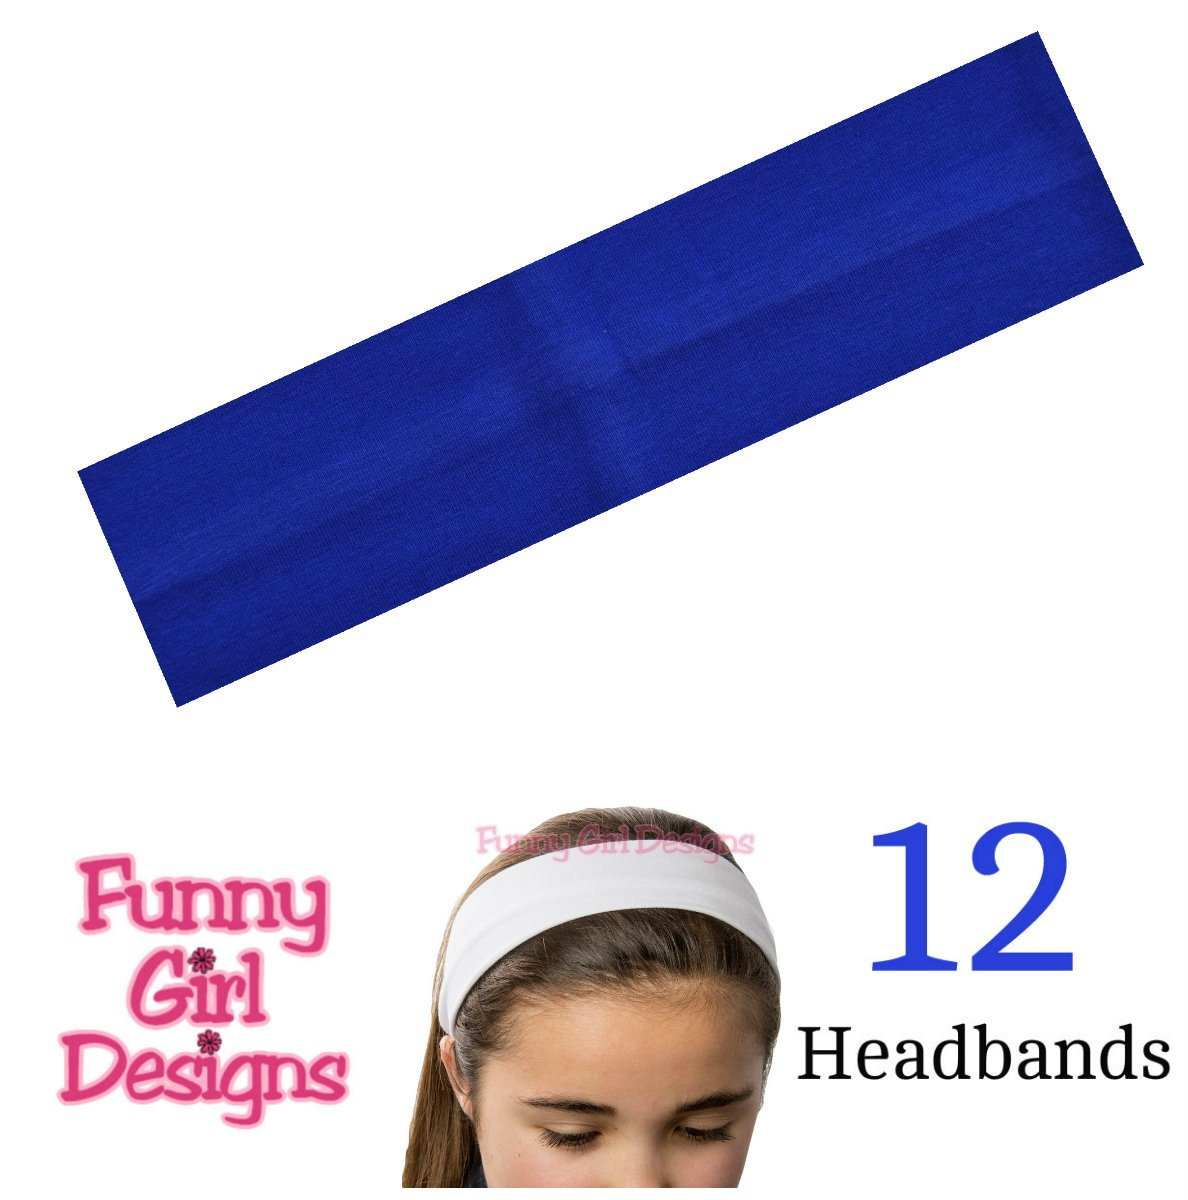 1 DOZEN 2 Inch Wide Cotton Stretch Headbands (Official Funny Girl Royal Blue)